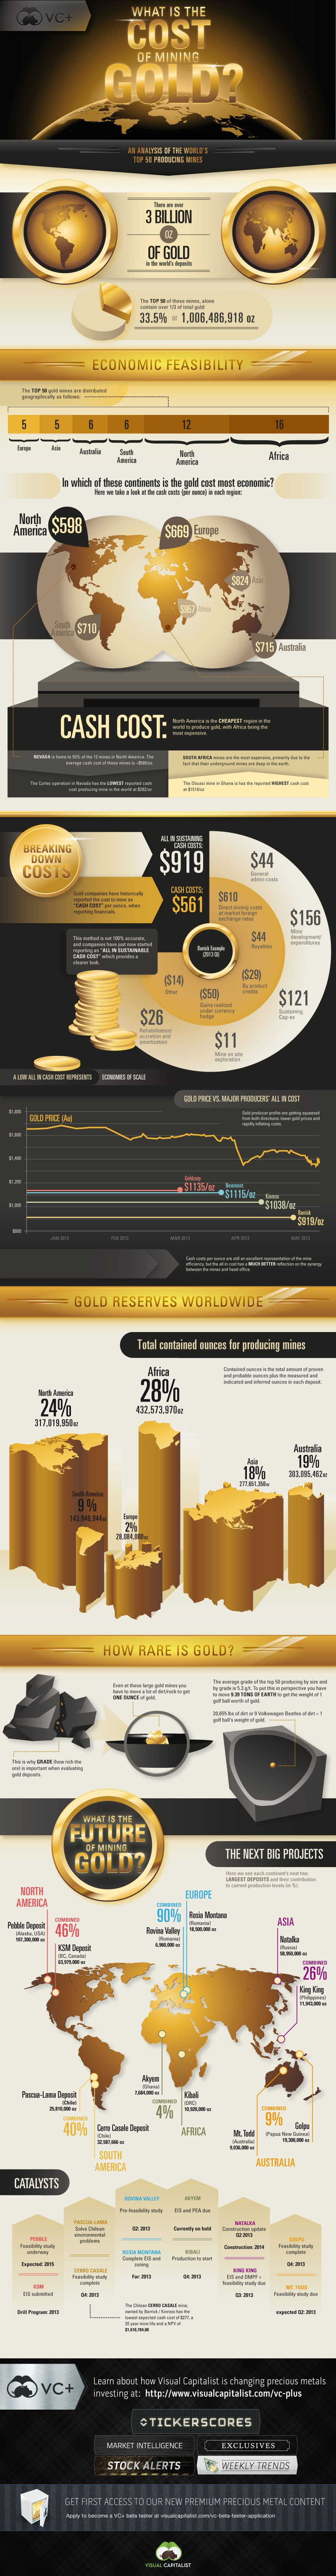 cost of mining gold